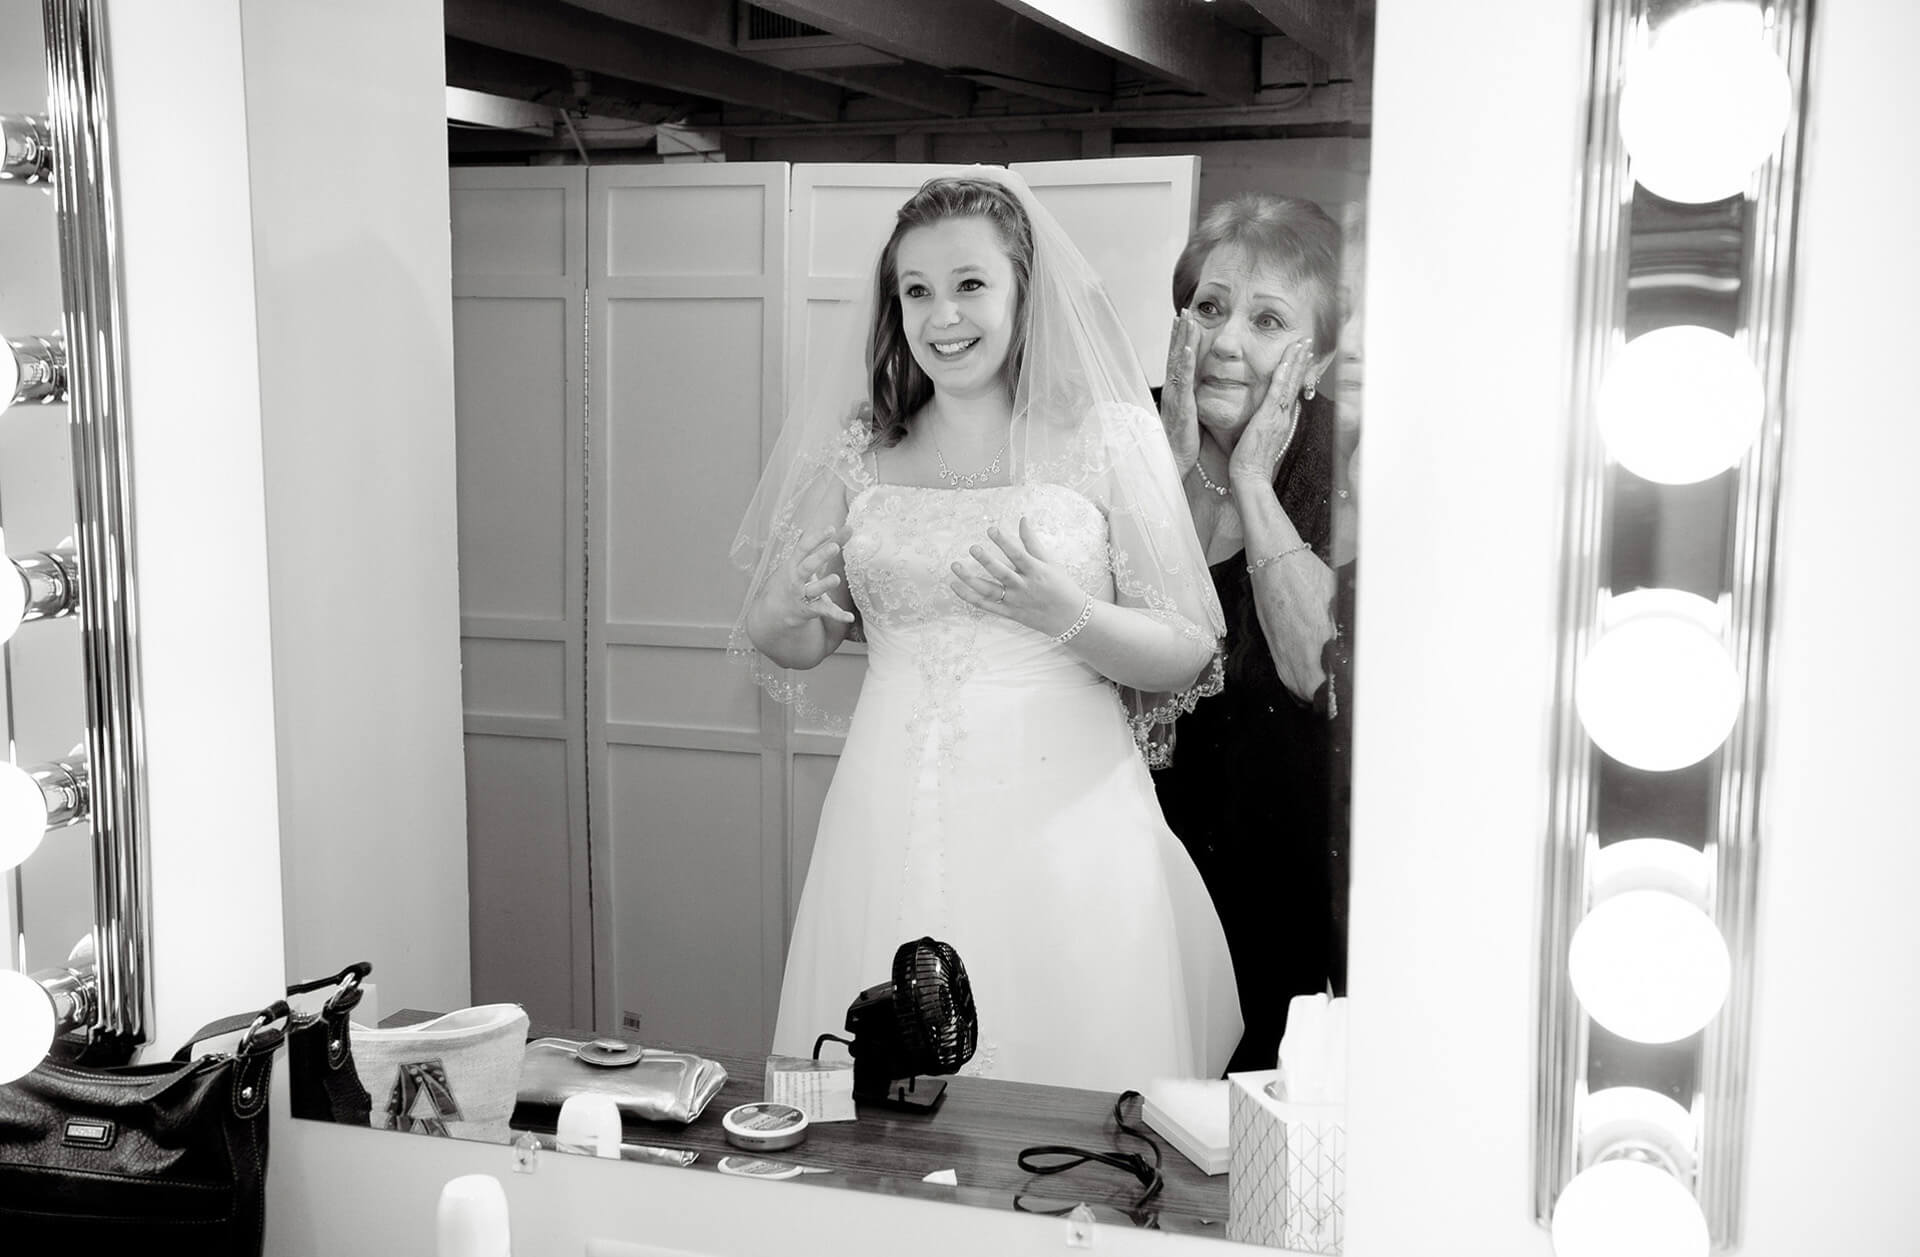 A Clarkston, Michigan bride finishes her wedding preparations in a mirror as her grandmother sees her for the first time from one of Michigan's most affordable Michigan wedding photojournalists.